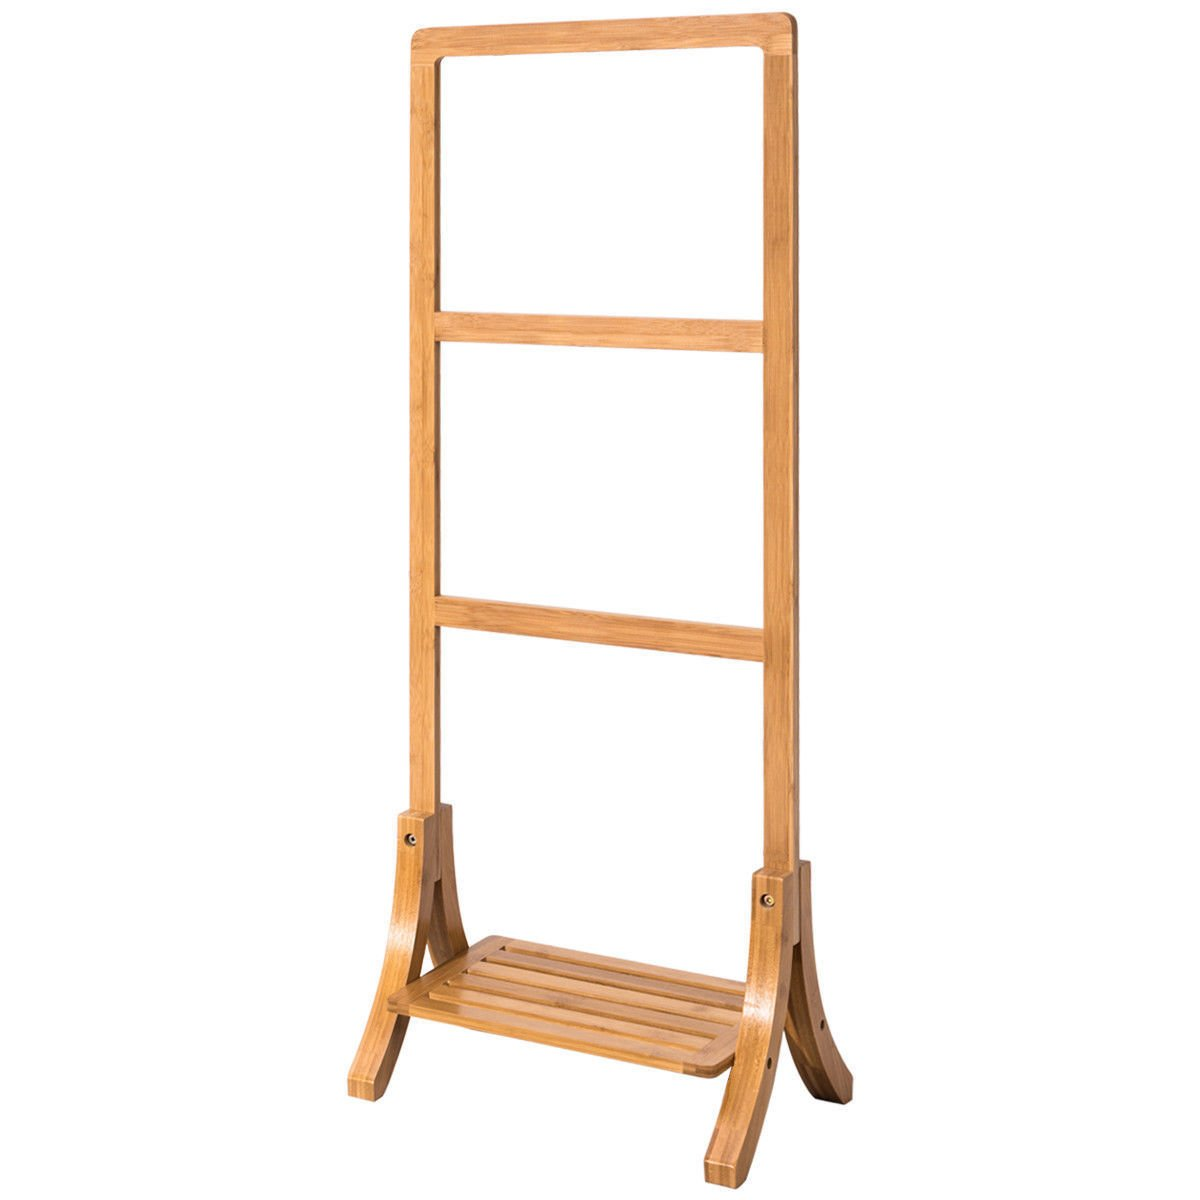 Free Standing Towel Rack Stand Hanger with Bottom Shelf Bathroom Storage Bamboo Natural